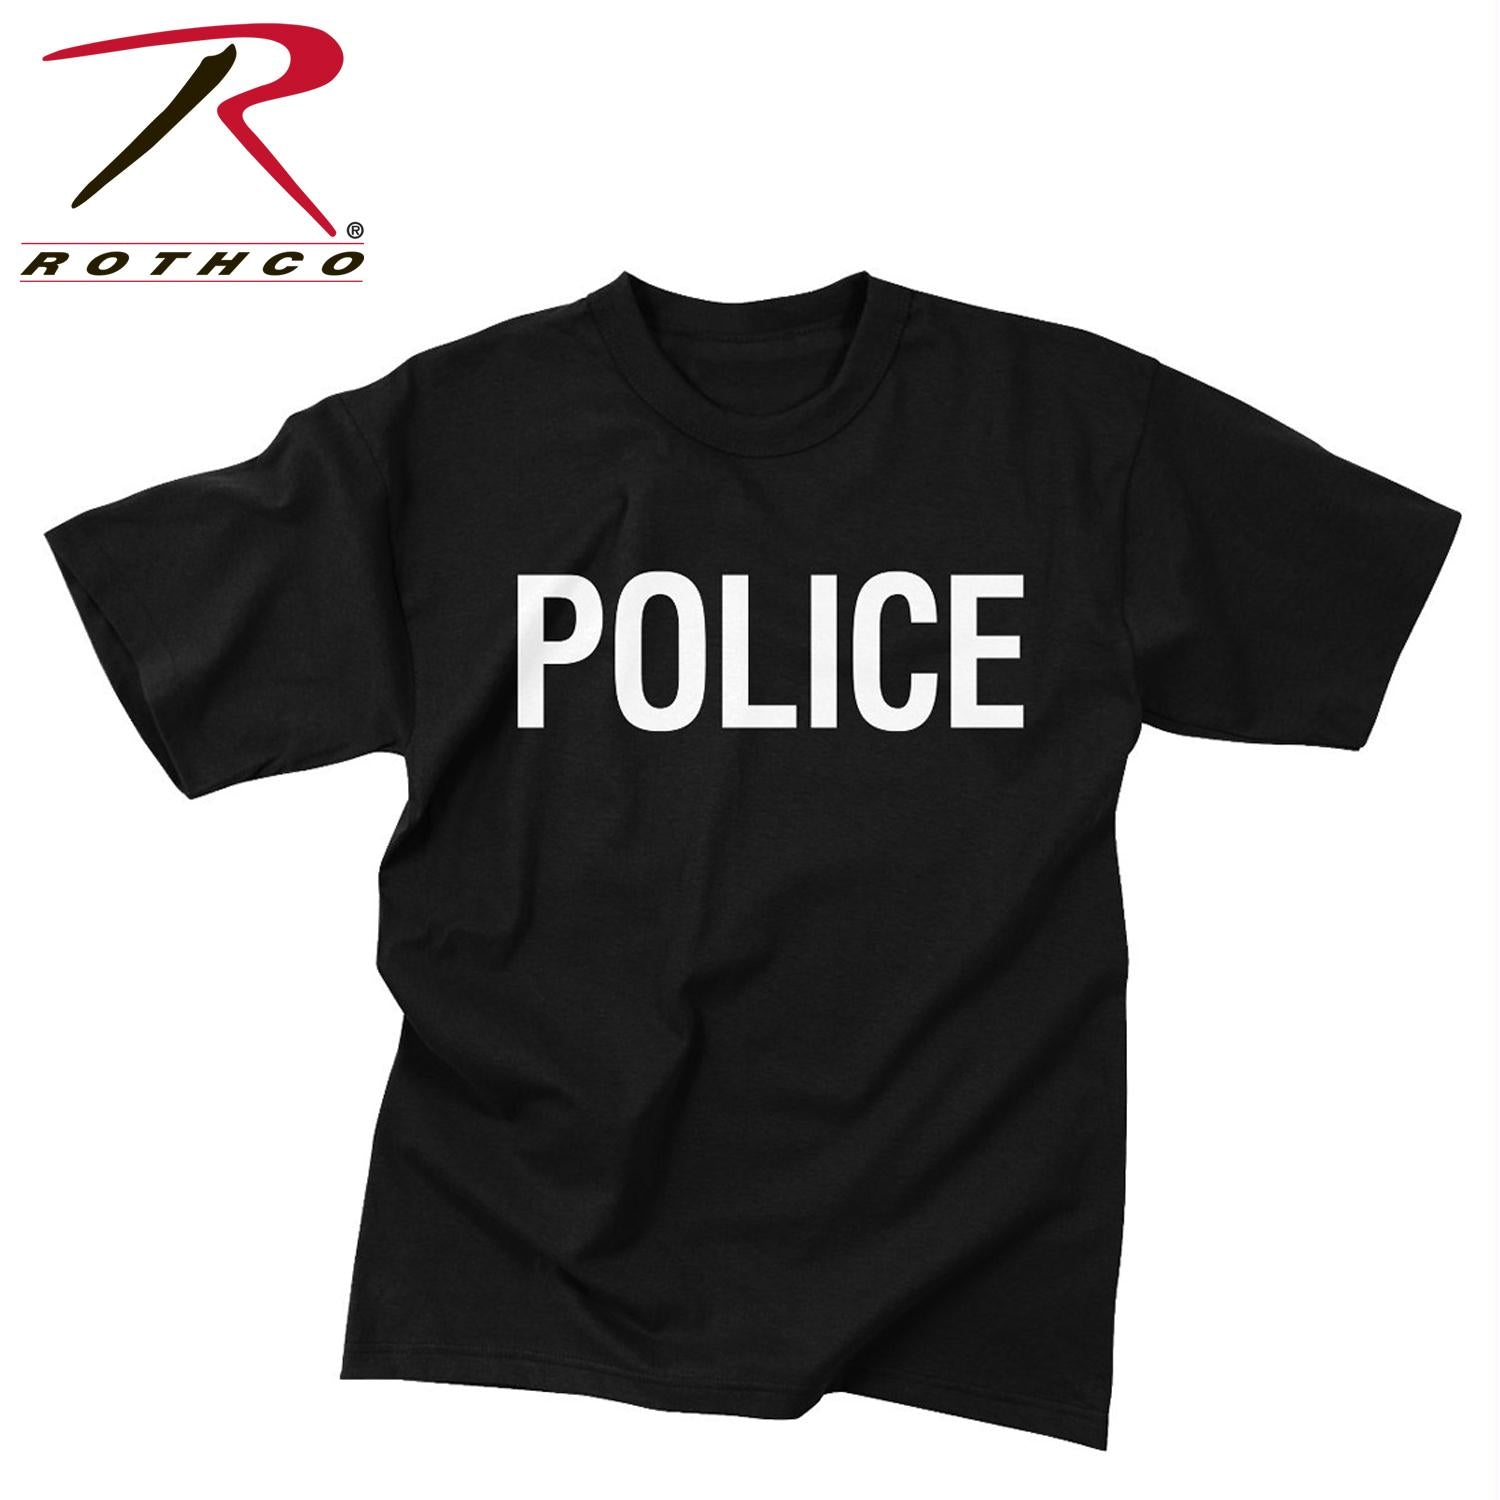 Rothco 2-Sided Police T-Shirt - 4XL